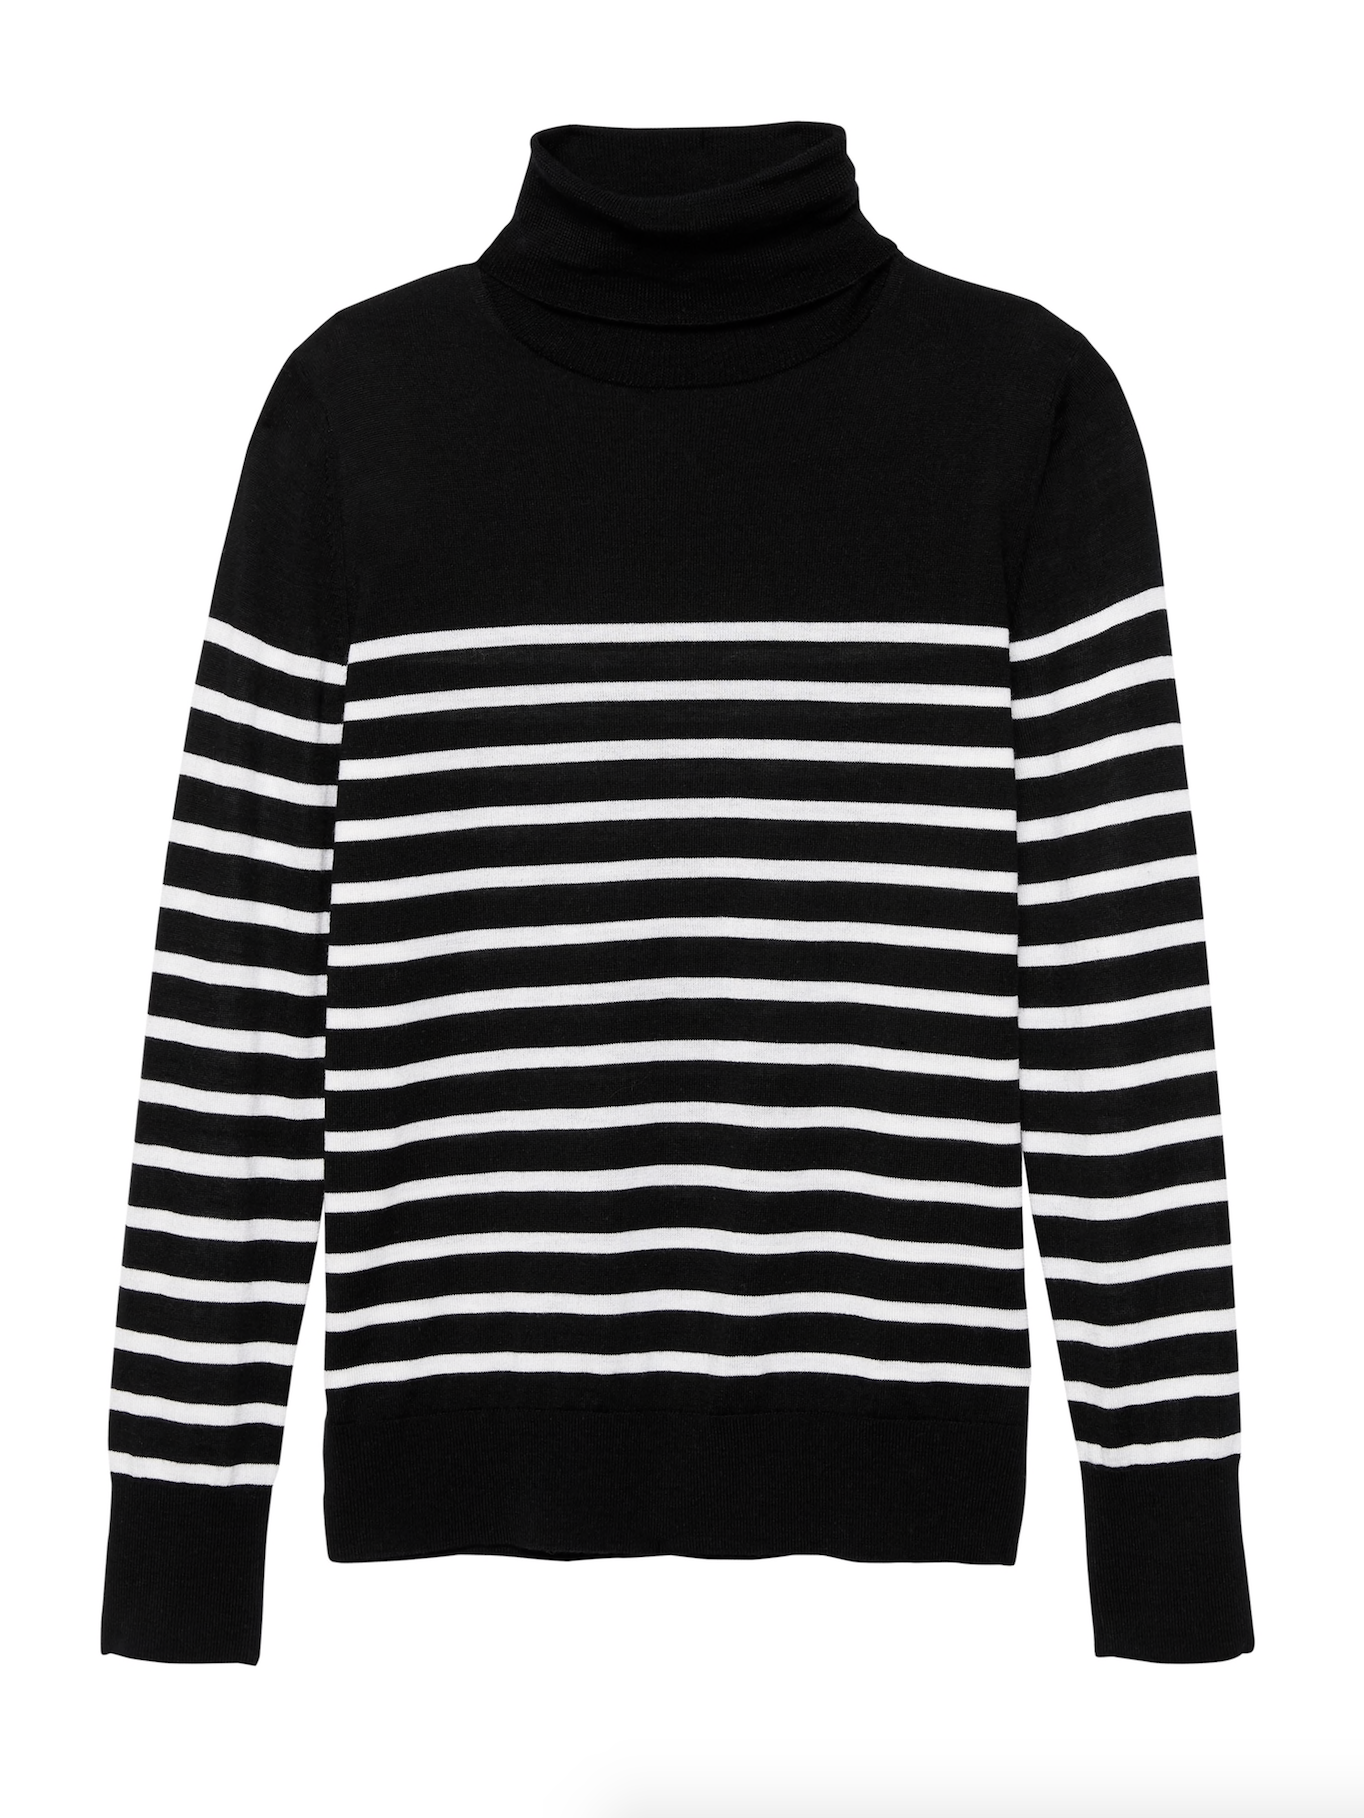 Merino Wool Stripe Turtleneck Sweater